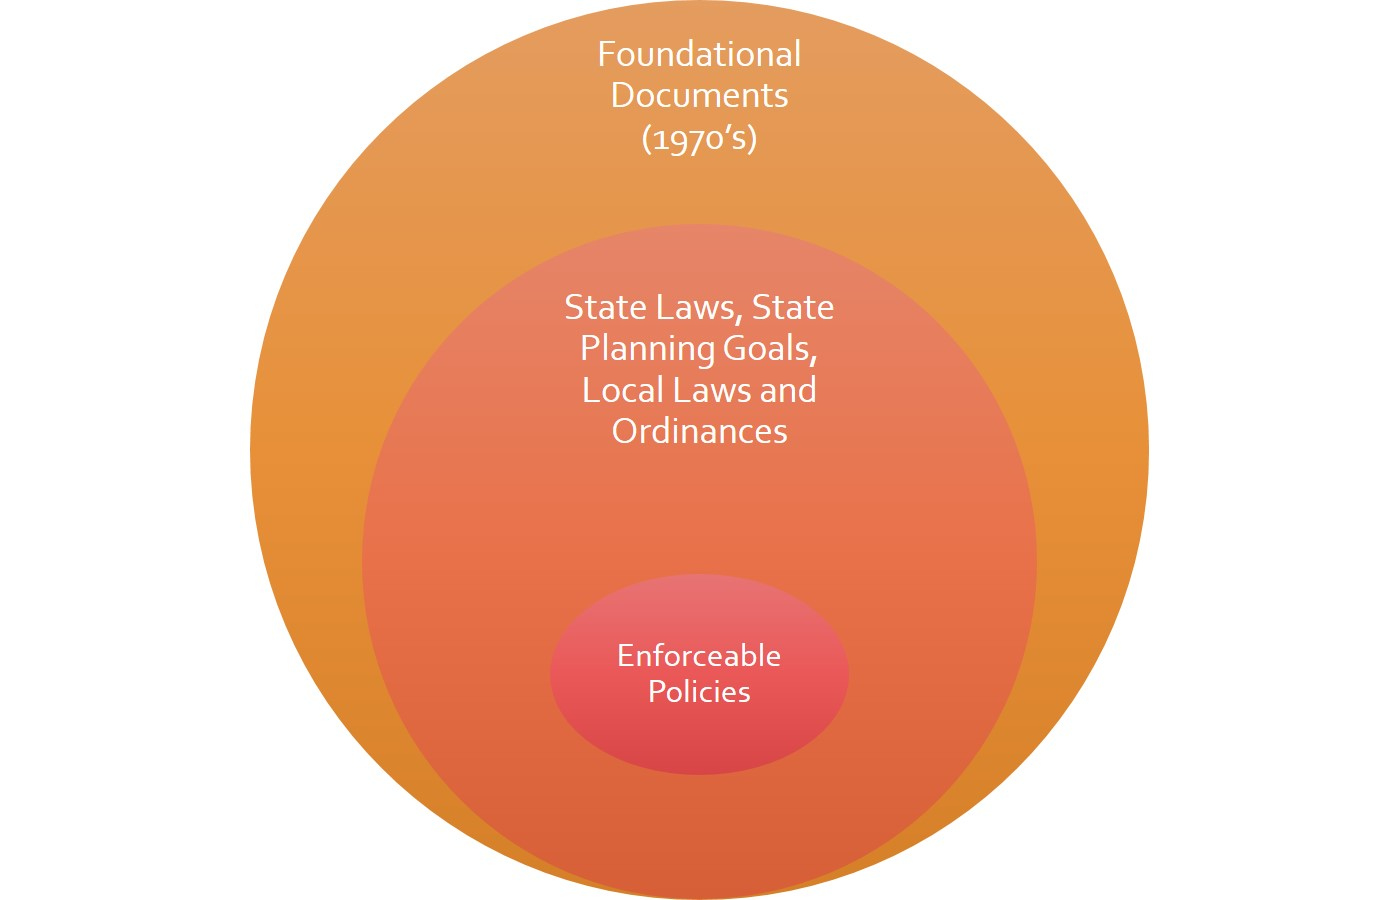 Image showing the relationship between foundational documents, state laws and goals, and enforceable policies.